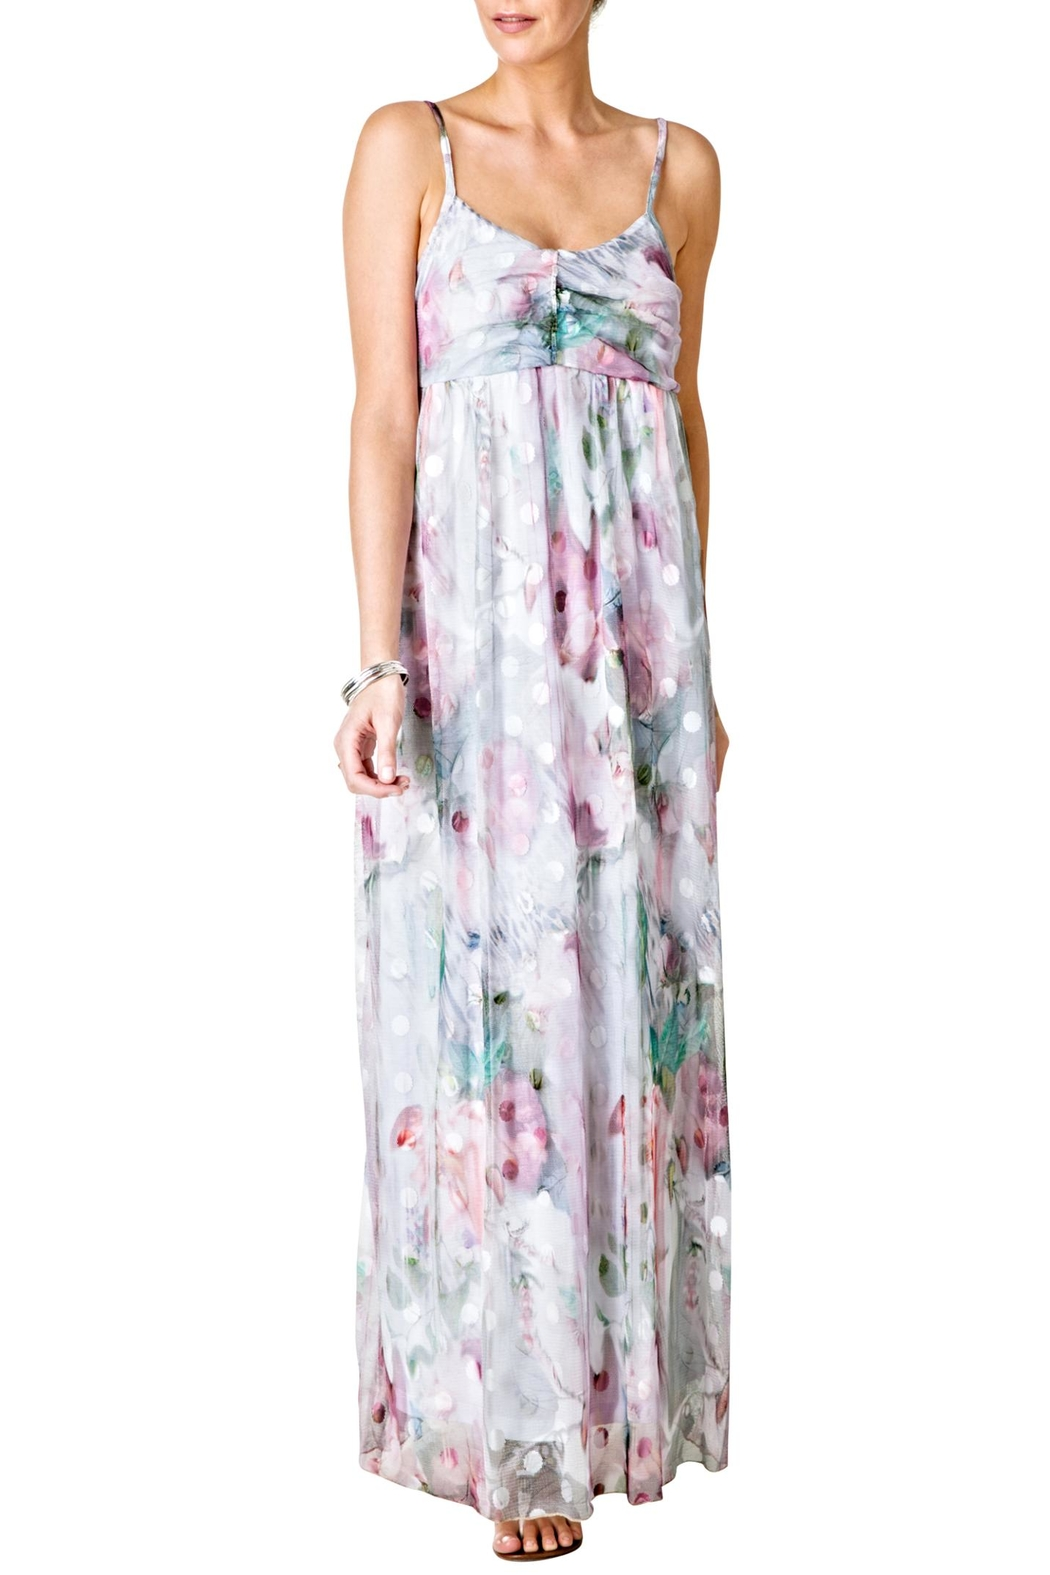 Yest flower maxi dress from chicago by what she wants boutique yest flower maxi dress front cropped image mightylinksfo